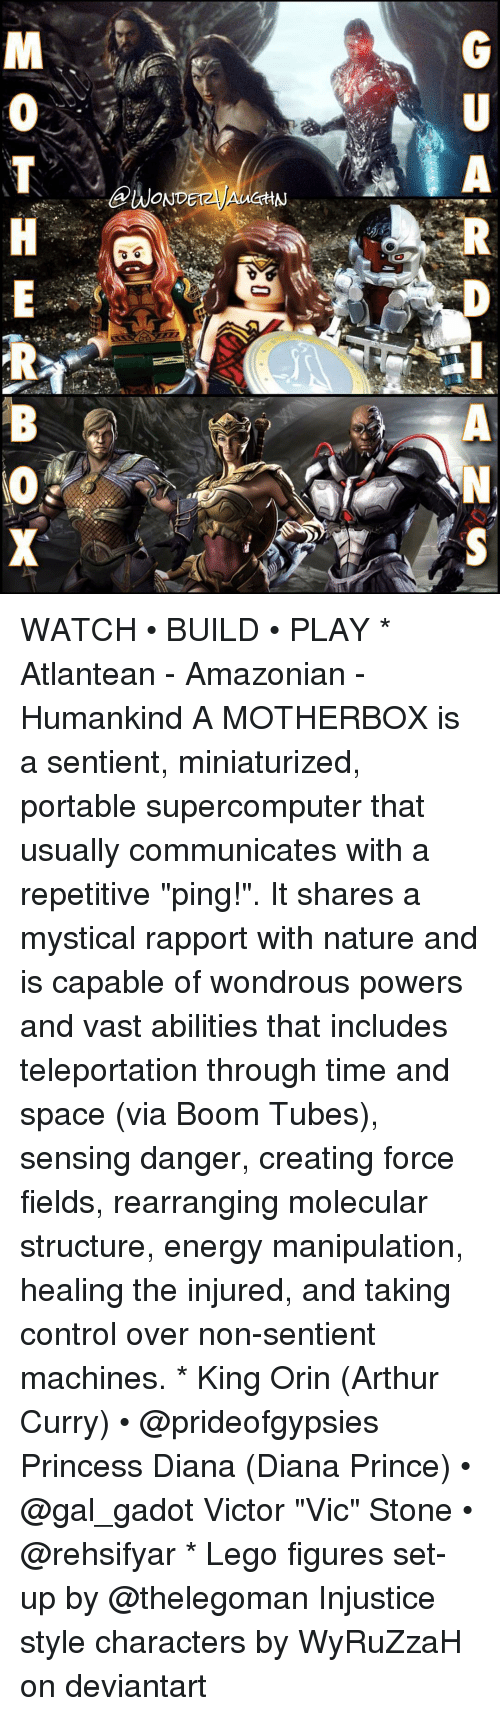 """naturalism: A  @WONDETzyAUCHN  GU  RP-ANS  MOTH E  RB (O X WATCH • BUILD • PLAY * Atlantean - Amazonian - Humankind A MOTHERBOX is a sentient, miniaturized, portable supercomputer that usually communicates with a repetitive """"ping!"""". It shares a mystical rapport with nature and is capable of wondrous powers and vast abilities that includes teleportation through time and space (via Boom Tubes), sensing danger, creating force fields, rearranging molecular structure, energy manipulation, healing the injured, and taking control over non-sentient machines. * King Orin (Arthur Curry) • @prideofgypsies Princess Diana (Diana Prince) • @gal_gadot Victor """"Vic"""" Stone • @rehsifyar * Lego figures set-up by @thelegoman Injustice style characters by WyRuZzaH on deviantart"""